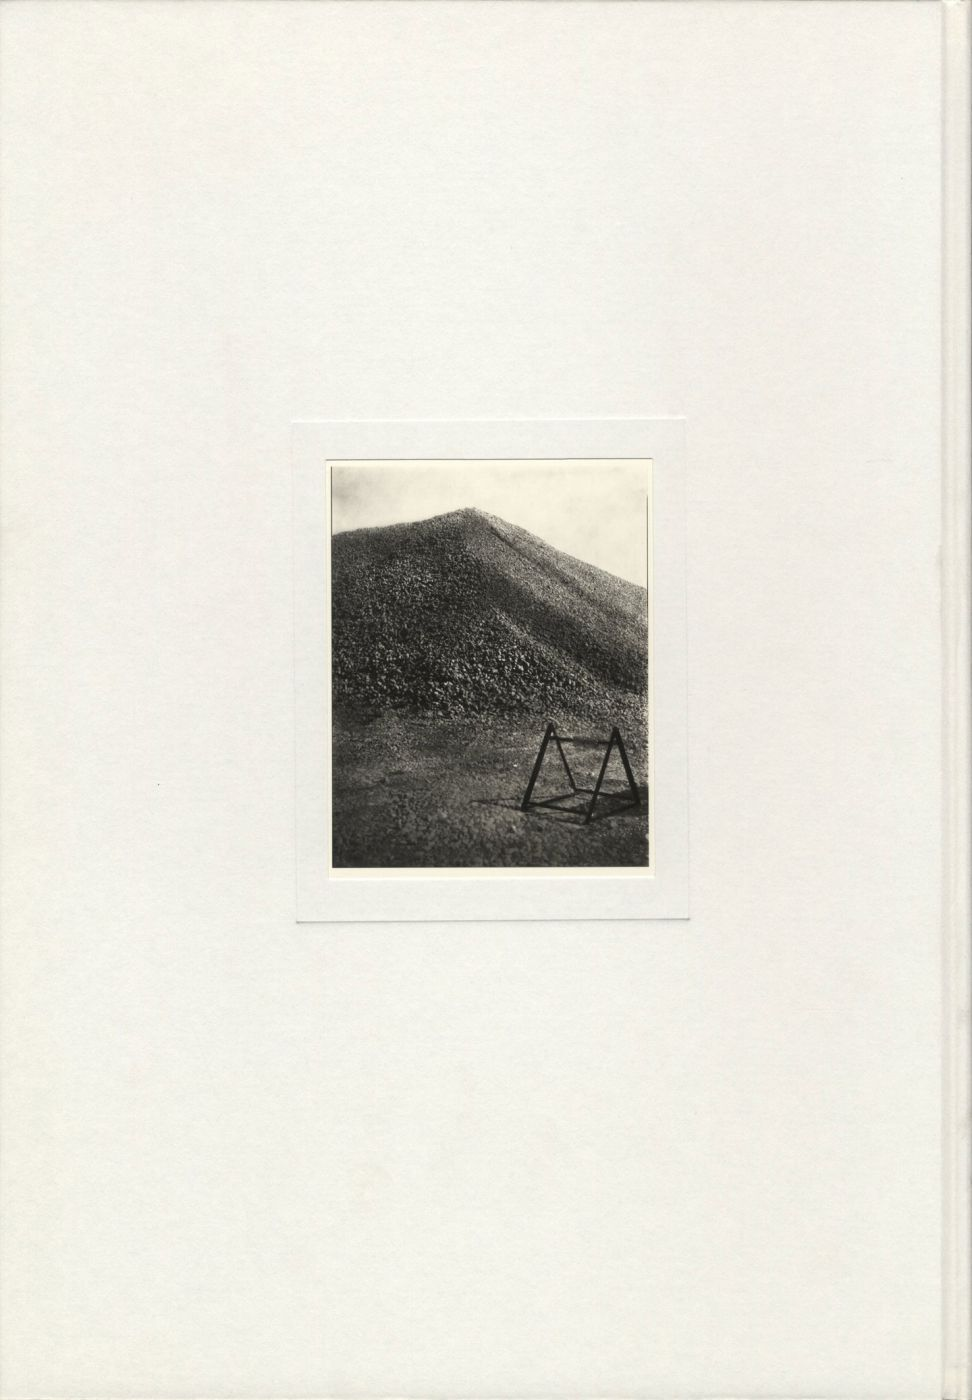 Raymond Meeks: A Clearing, Limited Edition (with Tipped-In Gelatin Silver Print) [SIGNED]